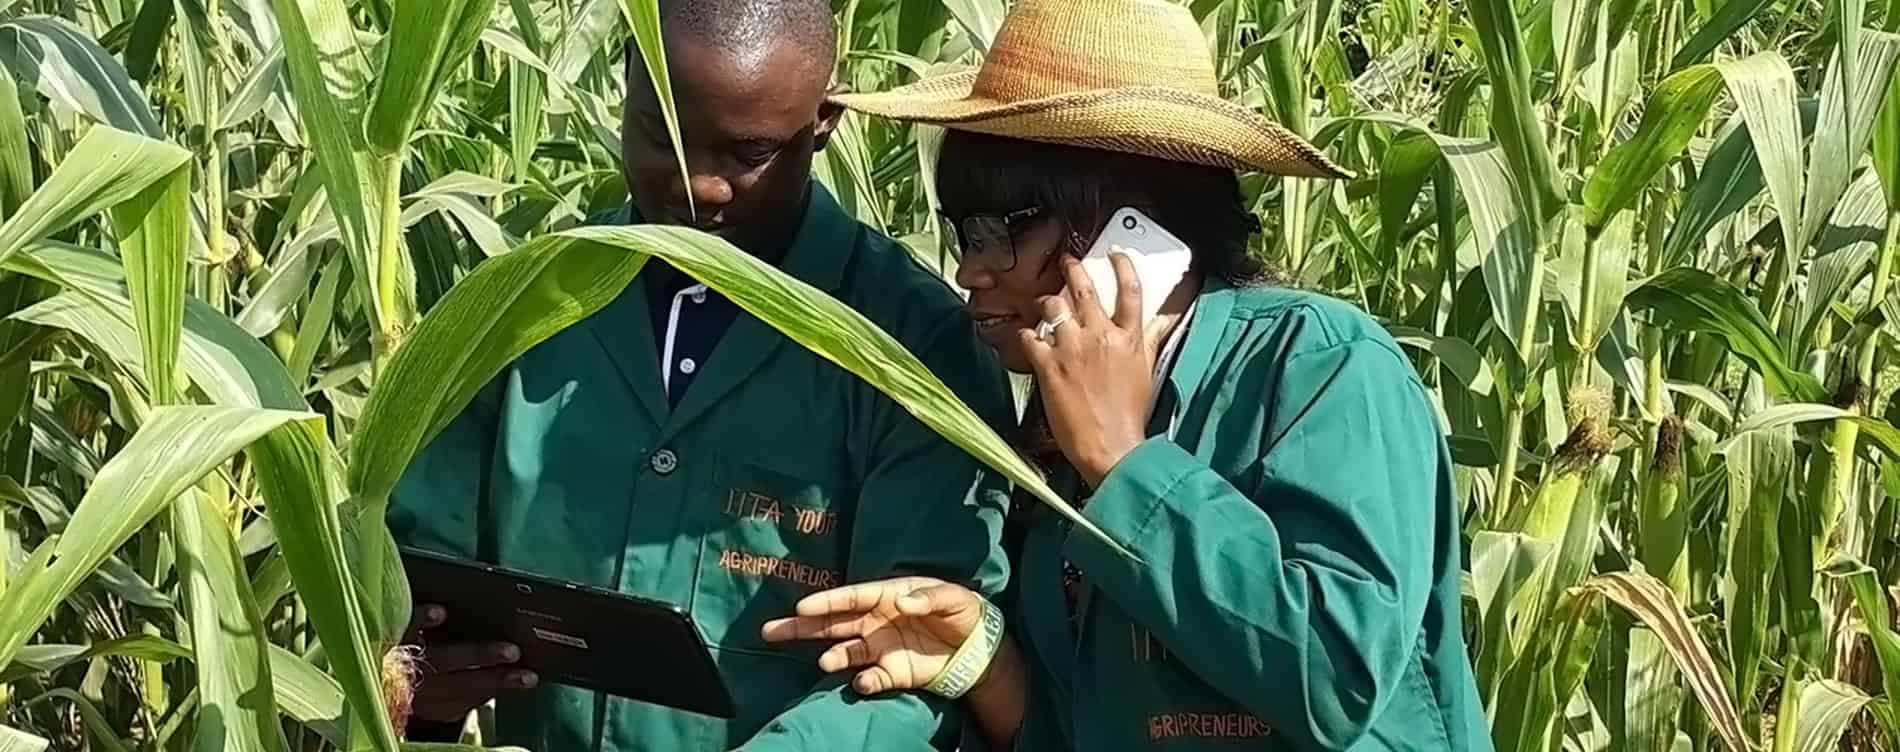 Agribusiness made easy through the use of ICT